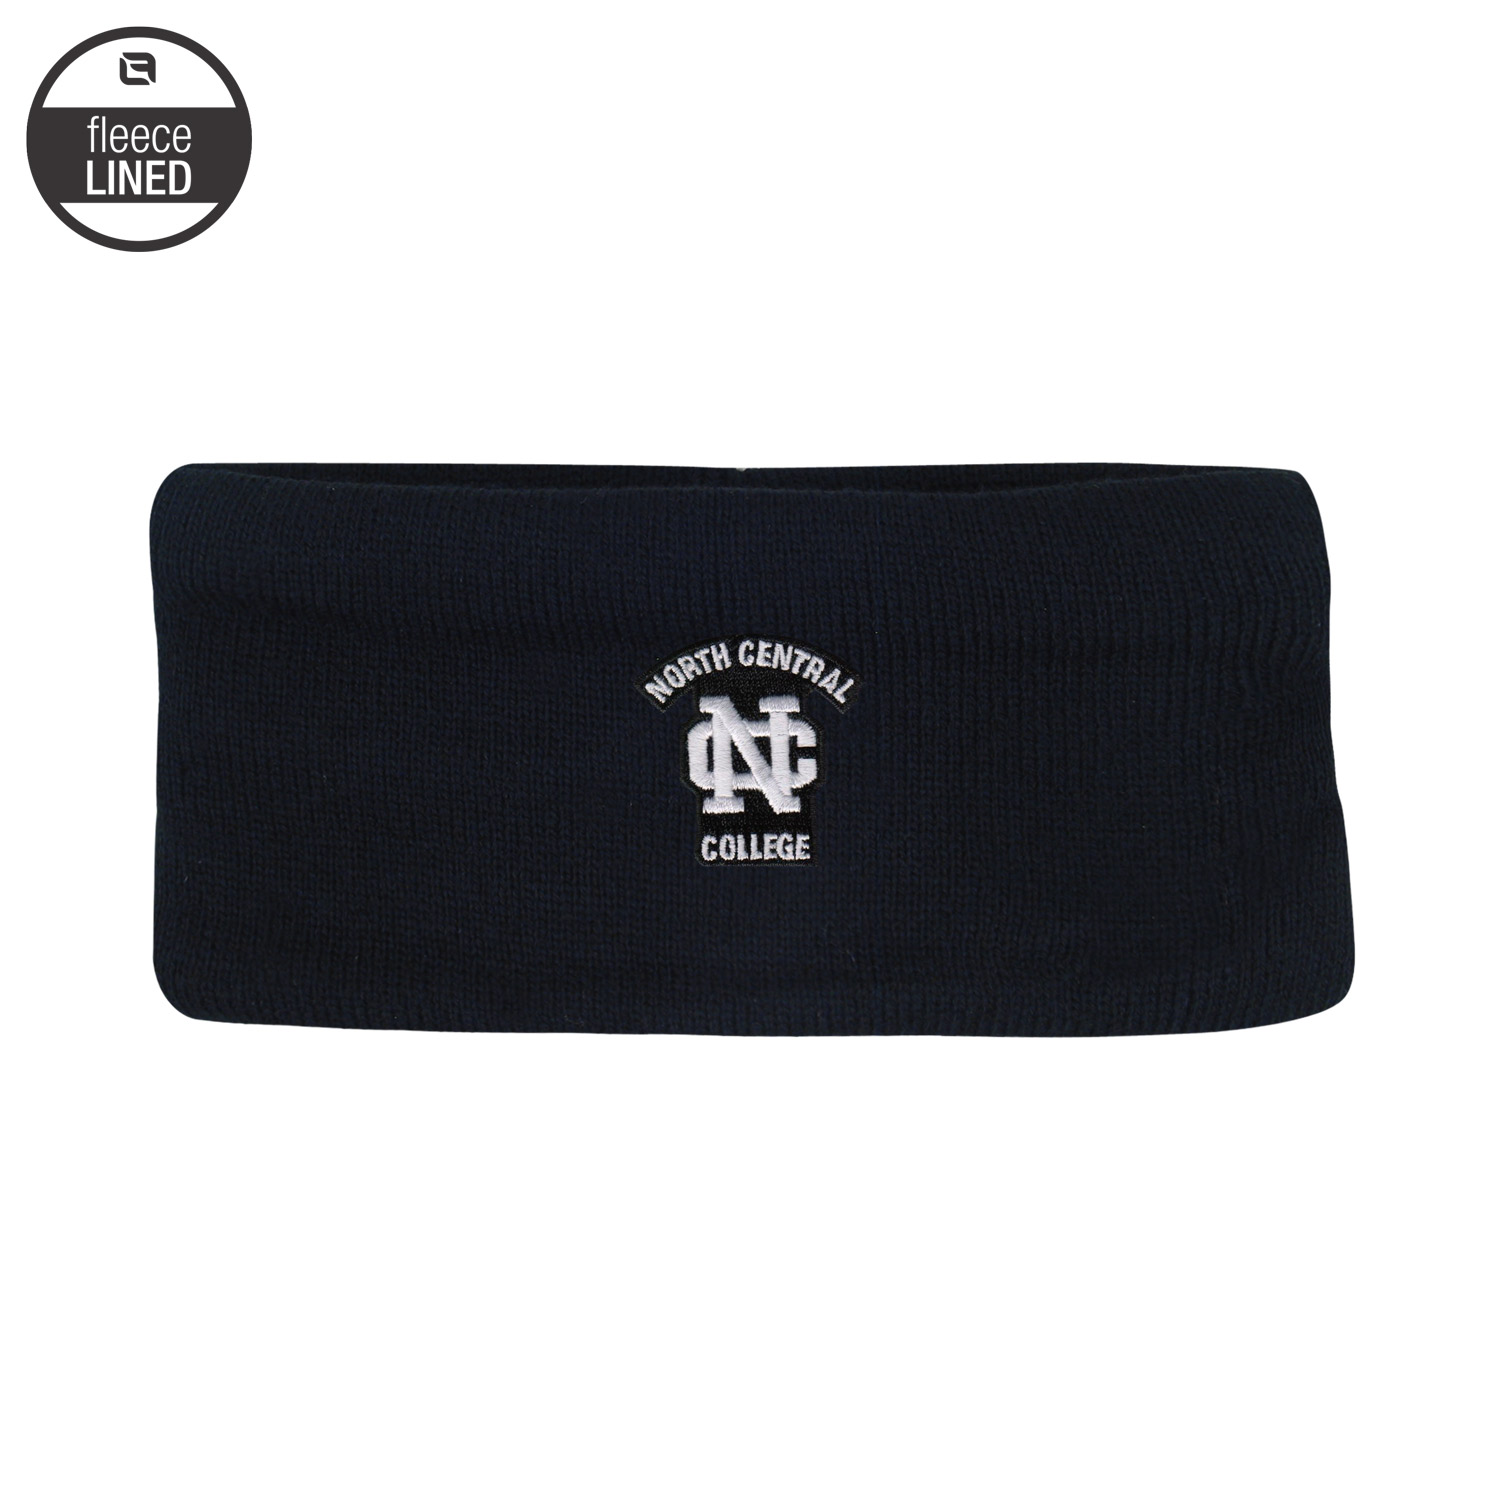 Image for the Deep Freeze Knit Headband w/Fleece Lining by Logofit product